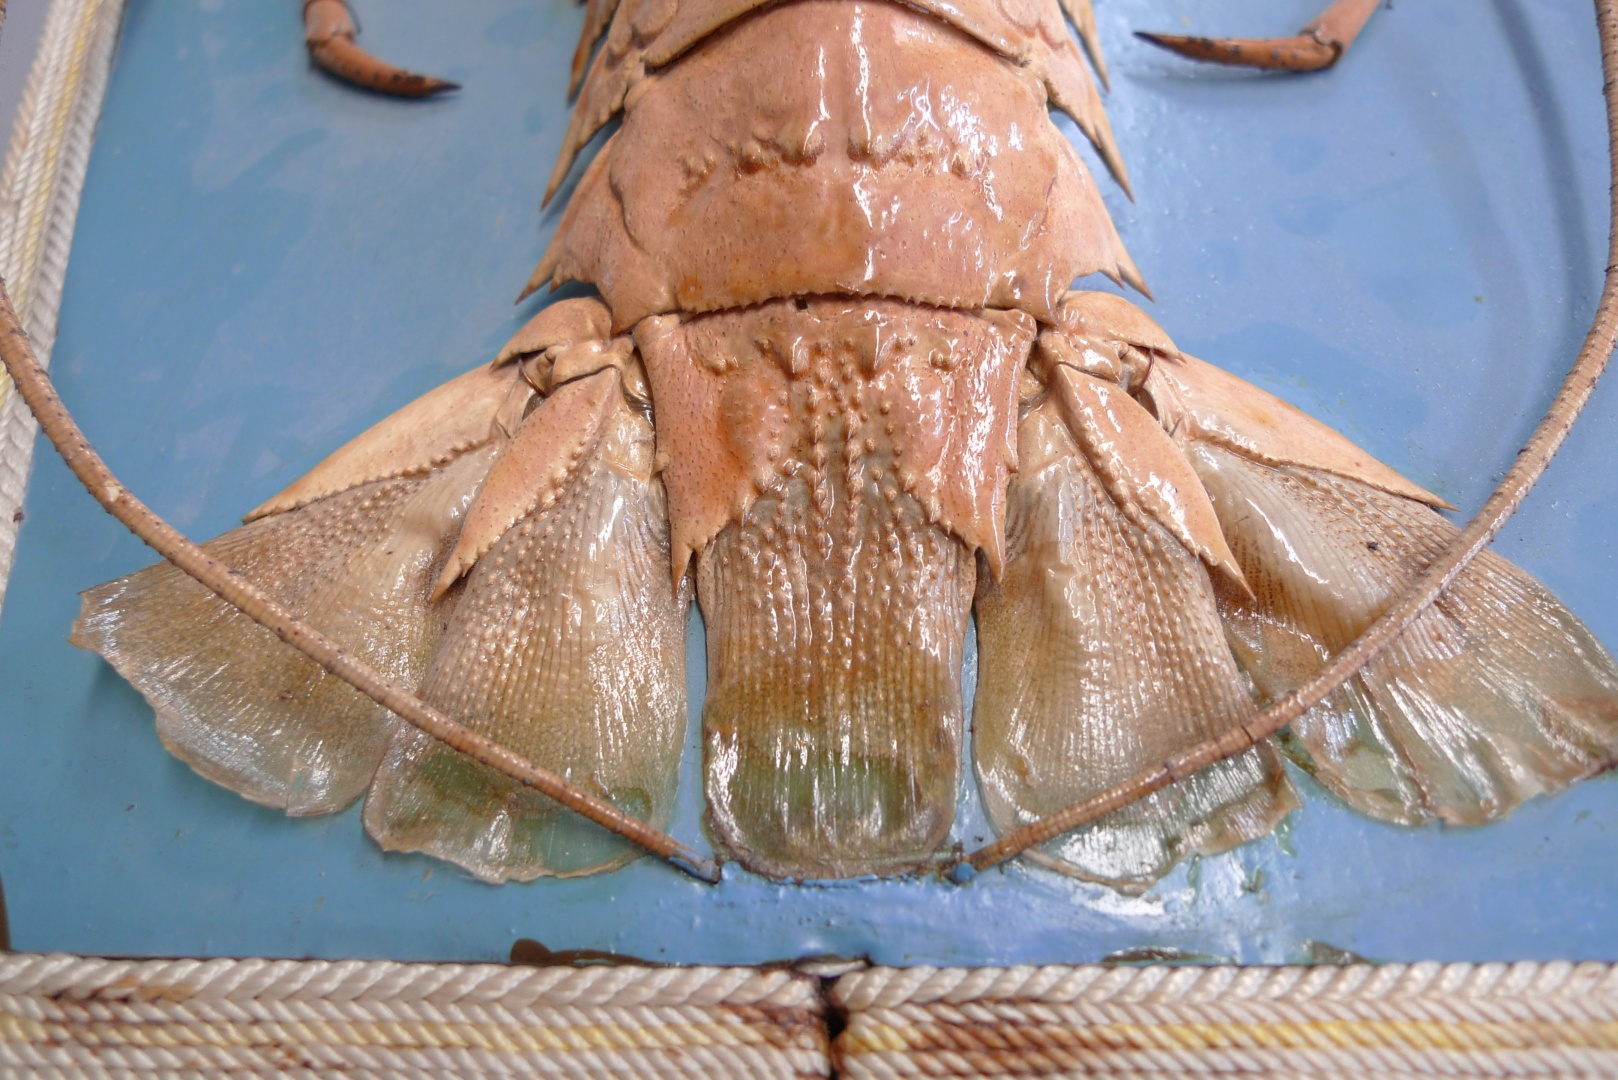 fig 36. When old glue was removed the edge of the tail fin was torn.